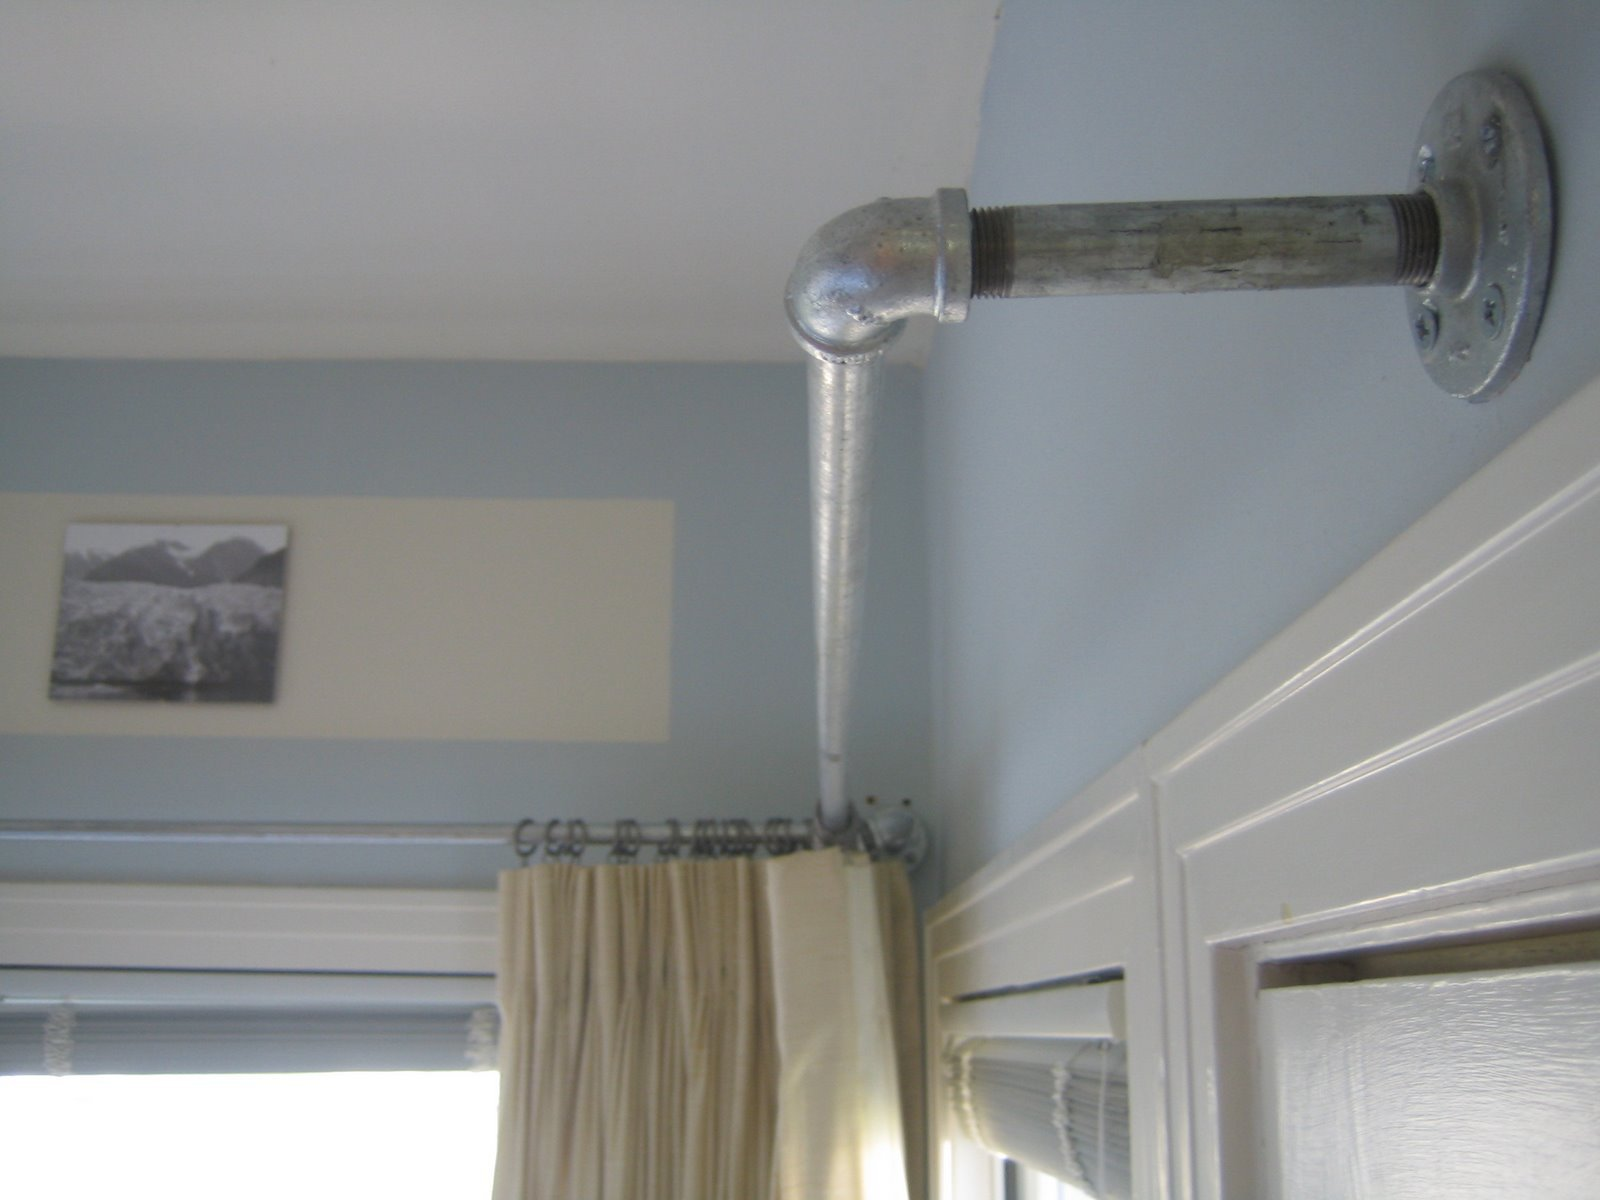 Bay Window Curtain Rod Lowes Curtain Swing Arm Curtain Rod Lowes Bay Window Curtain Rod